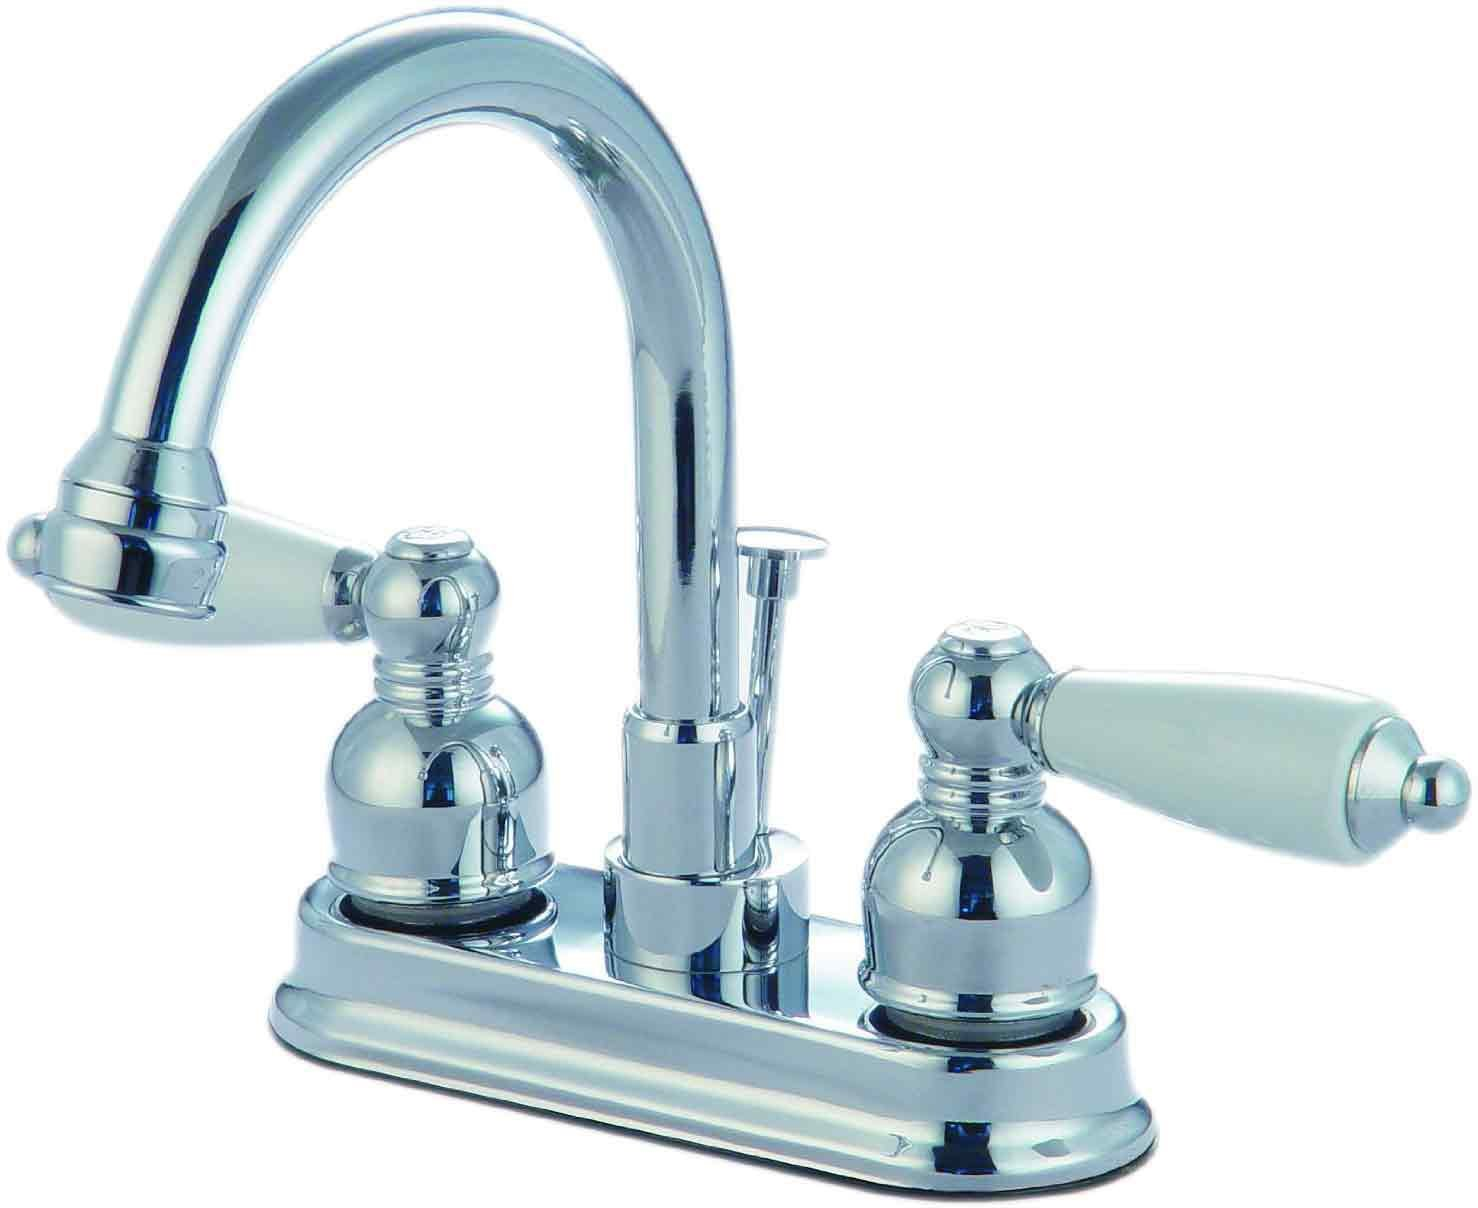 12-3822 Chrome Lavatory/Bar Faucet